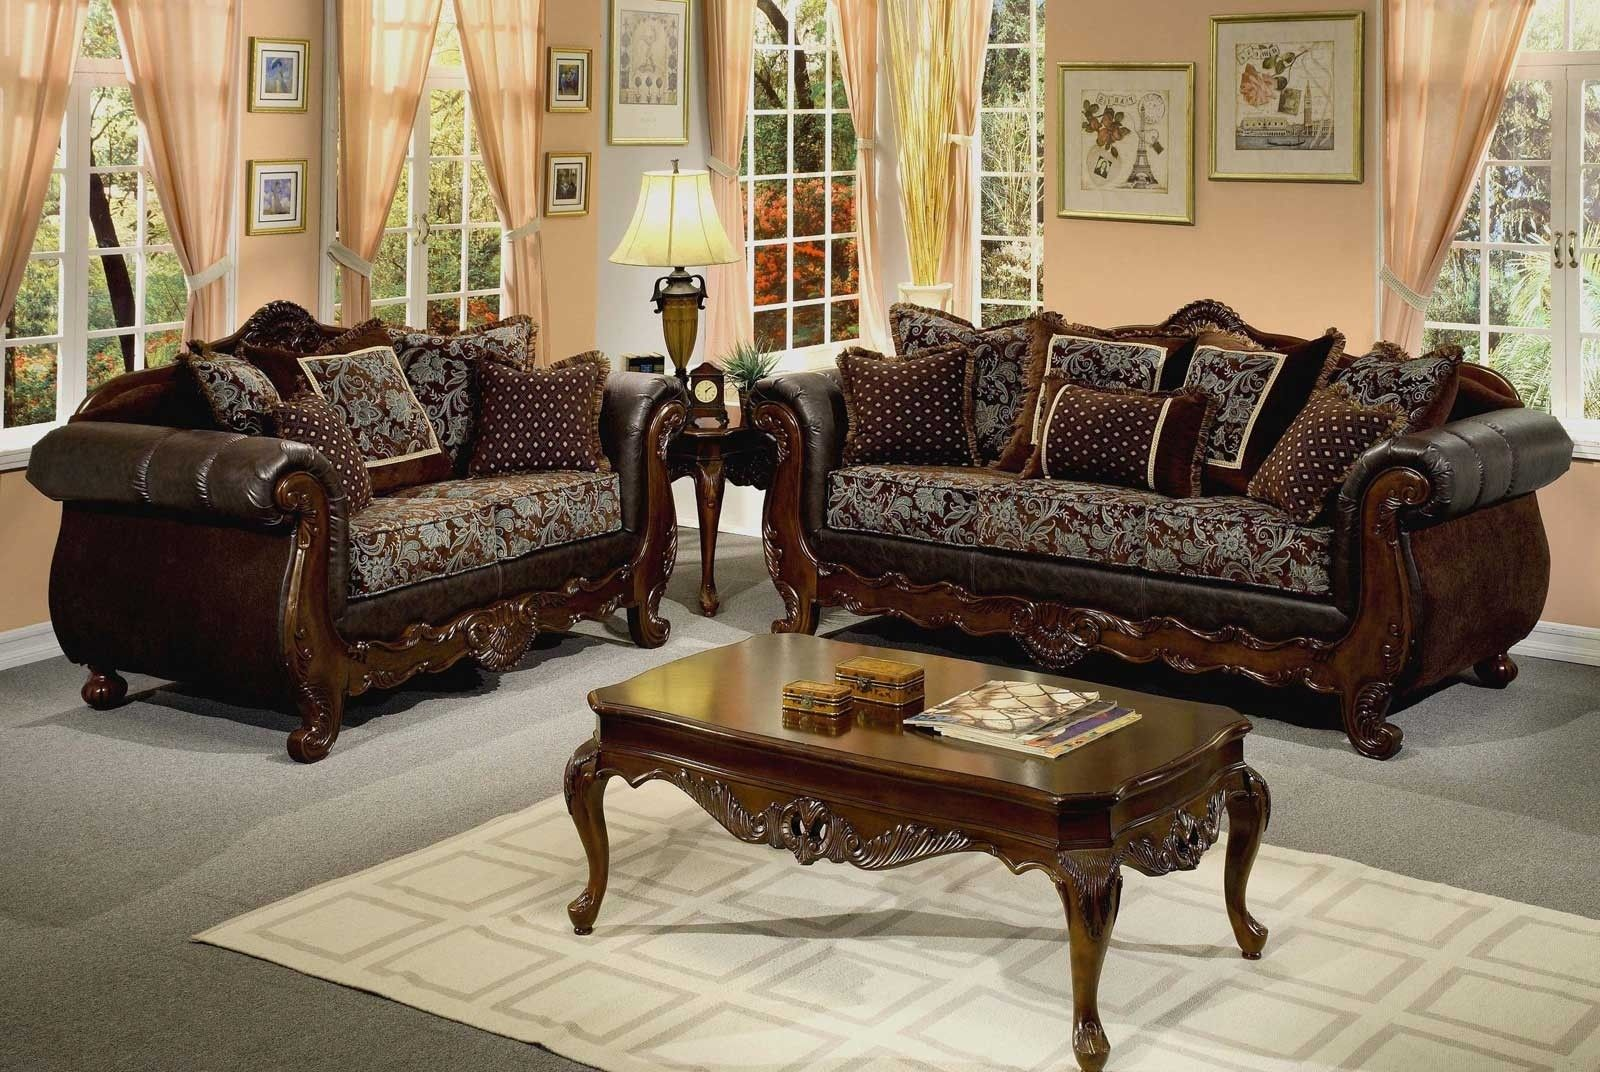 Luxurious Badcock Living Room Sets in 2020 | Wooden sofa ...